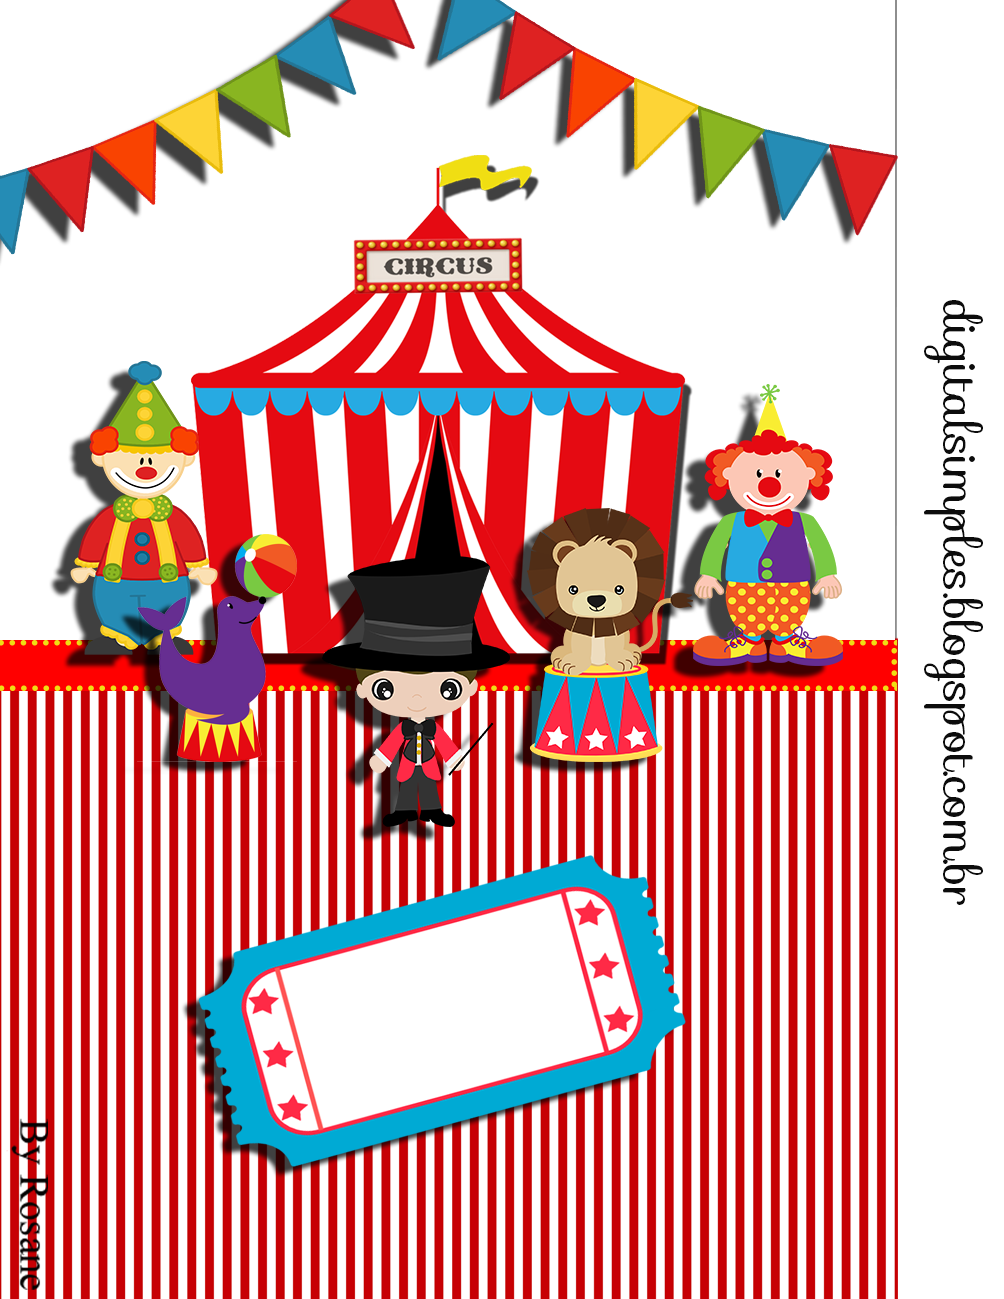 Circus party party printables and simple on pinterest for Circus printables